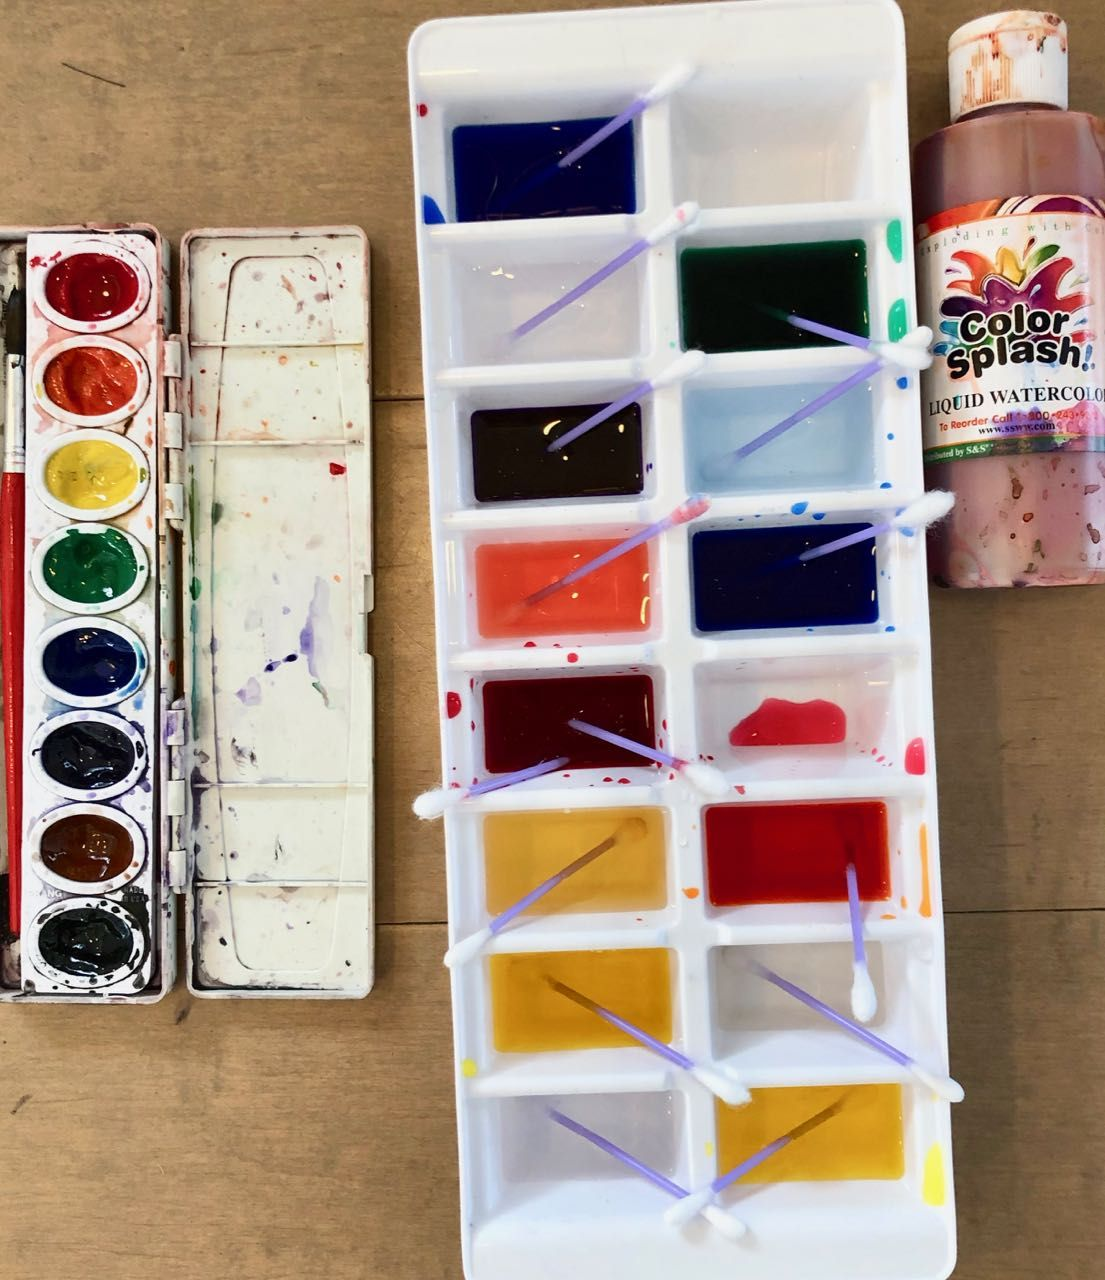 Pan Versus Liquid Watercolors For Kids Which Ones Should You Use